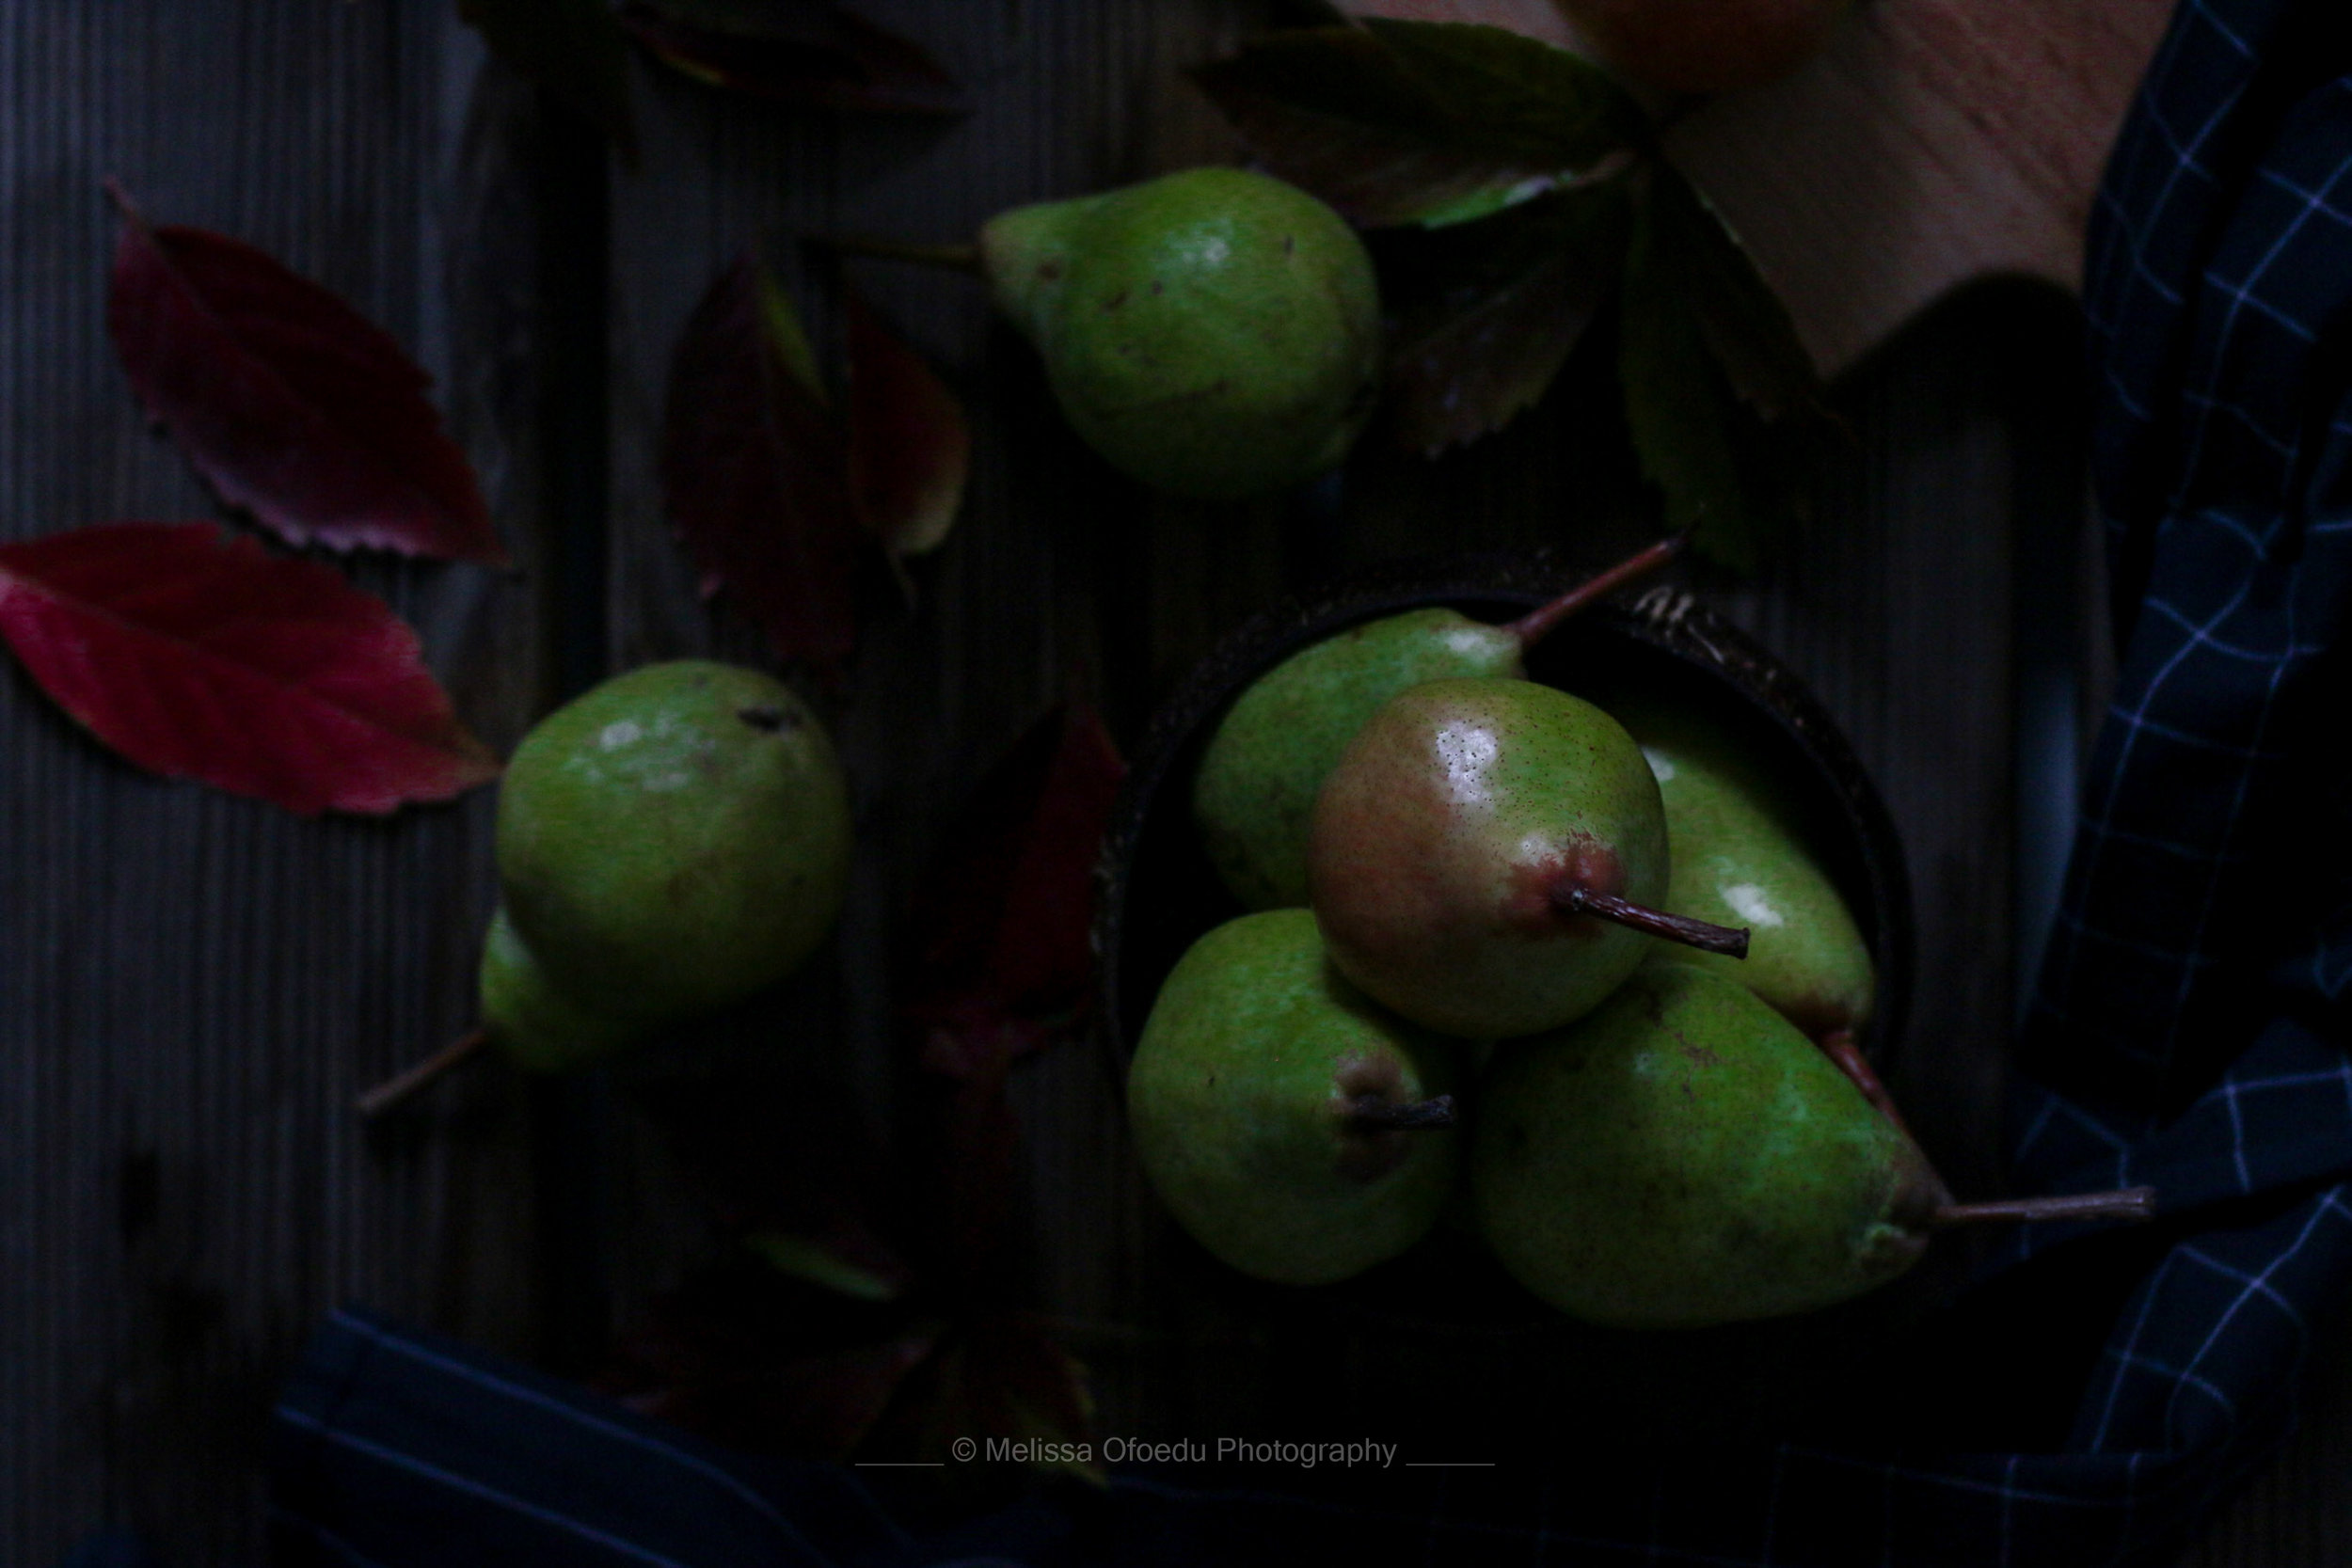 pears-from-up-melissa-ofoedu-photography-for-a-sweet-point-of-view-5-von-1